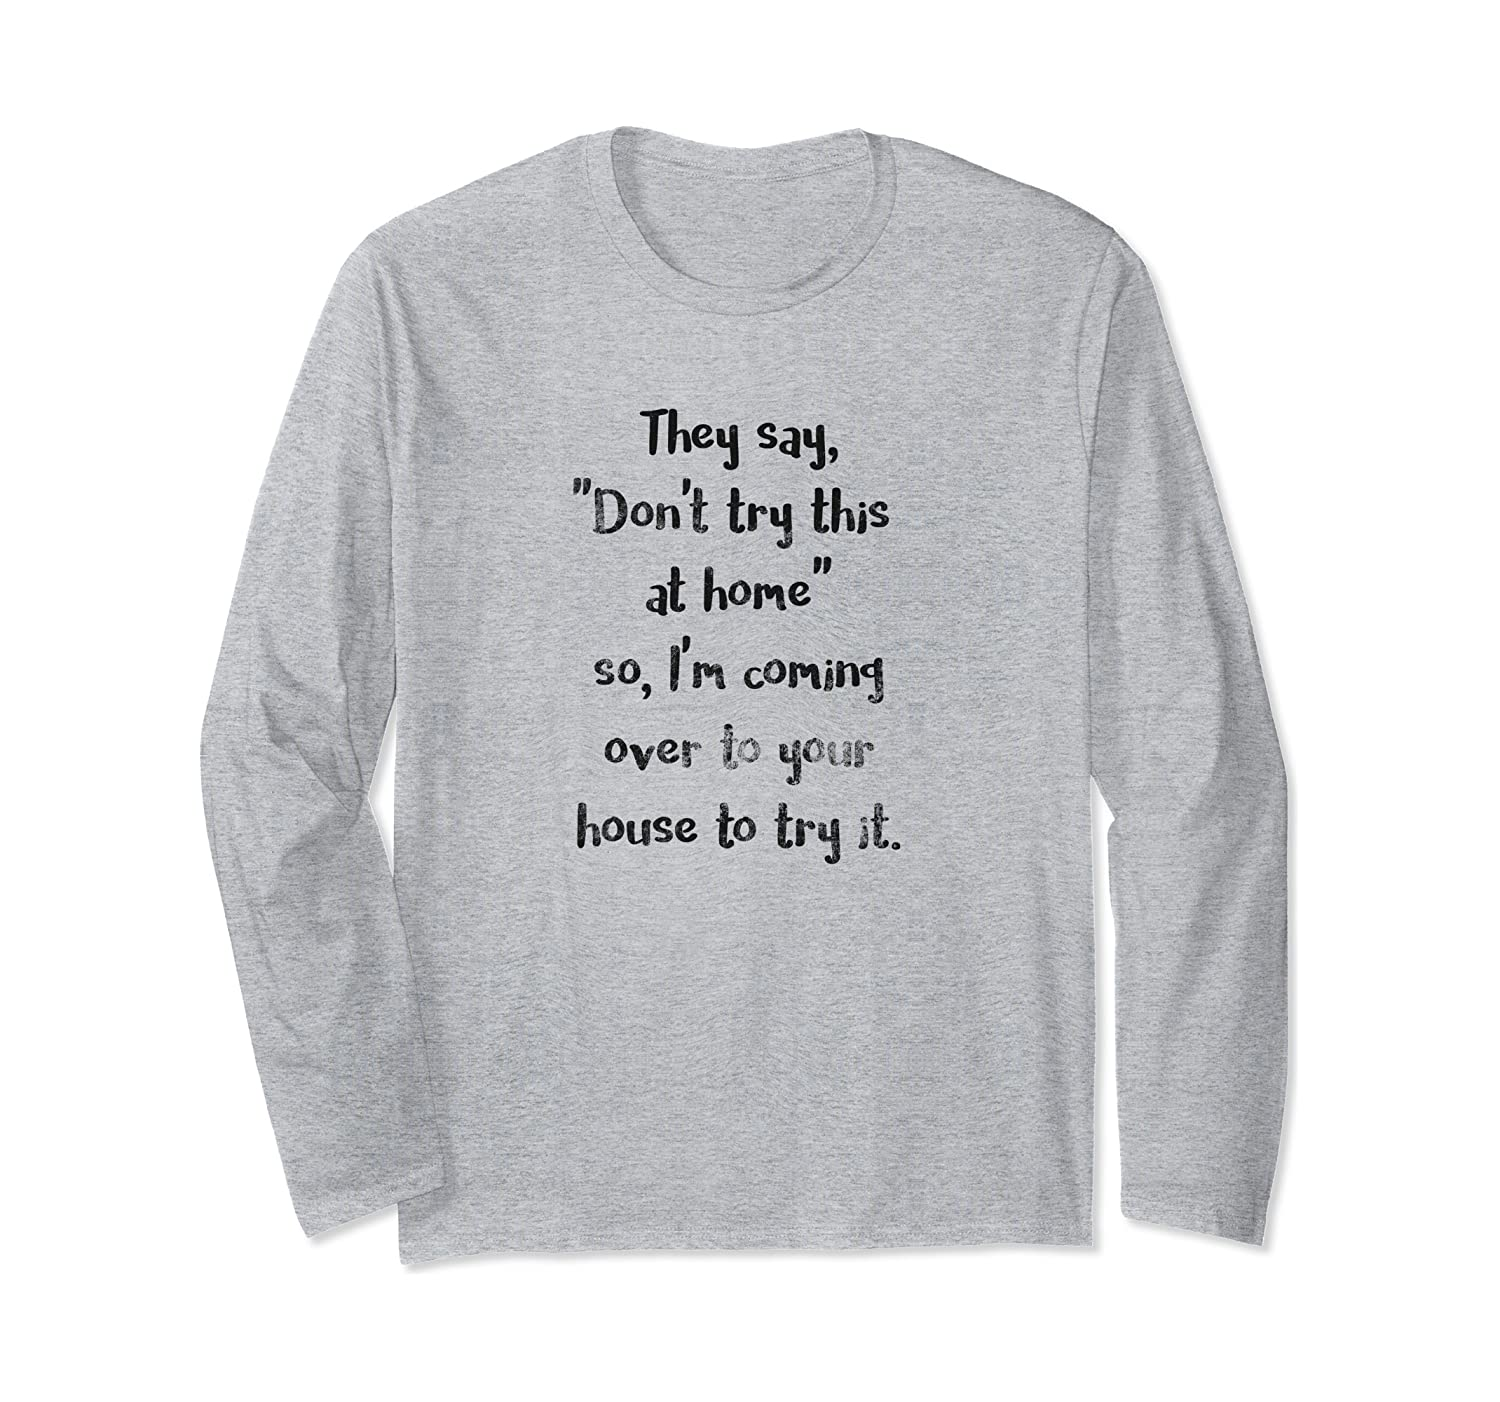 They Say Don't Try This at Home Funny Sarcastic Dark Long Sleeve T-Shirt